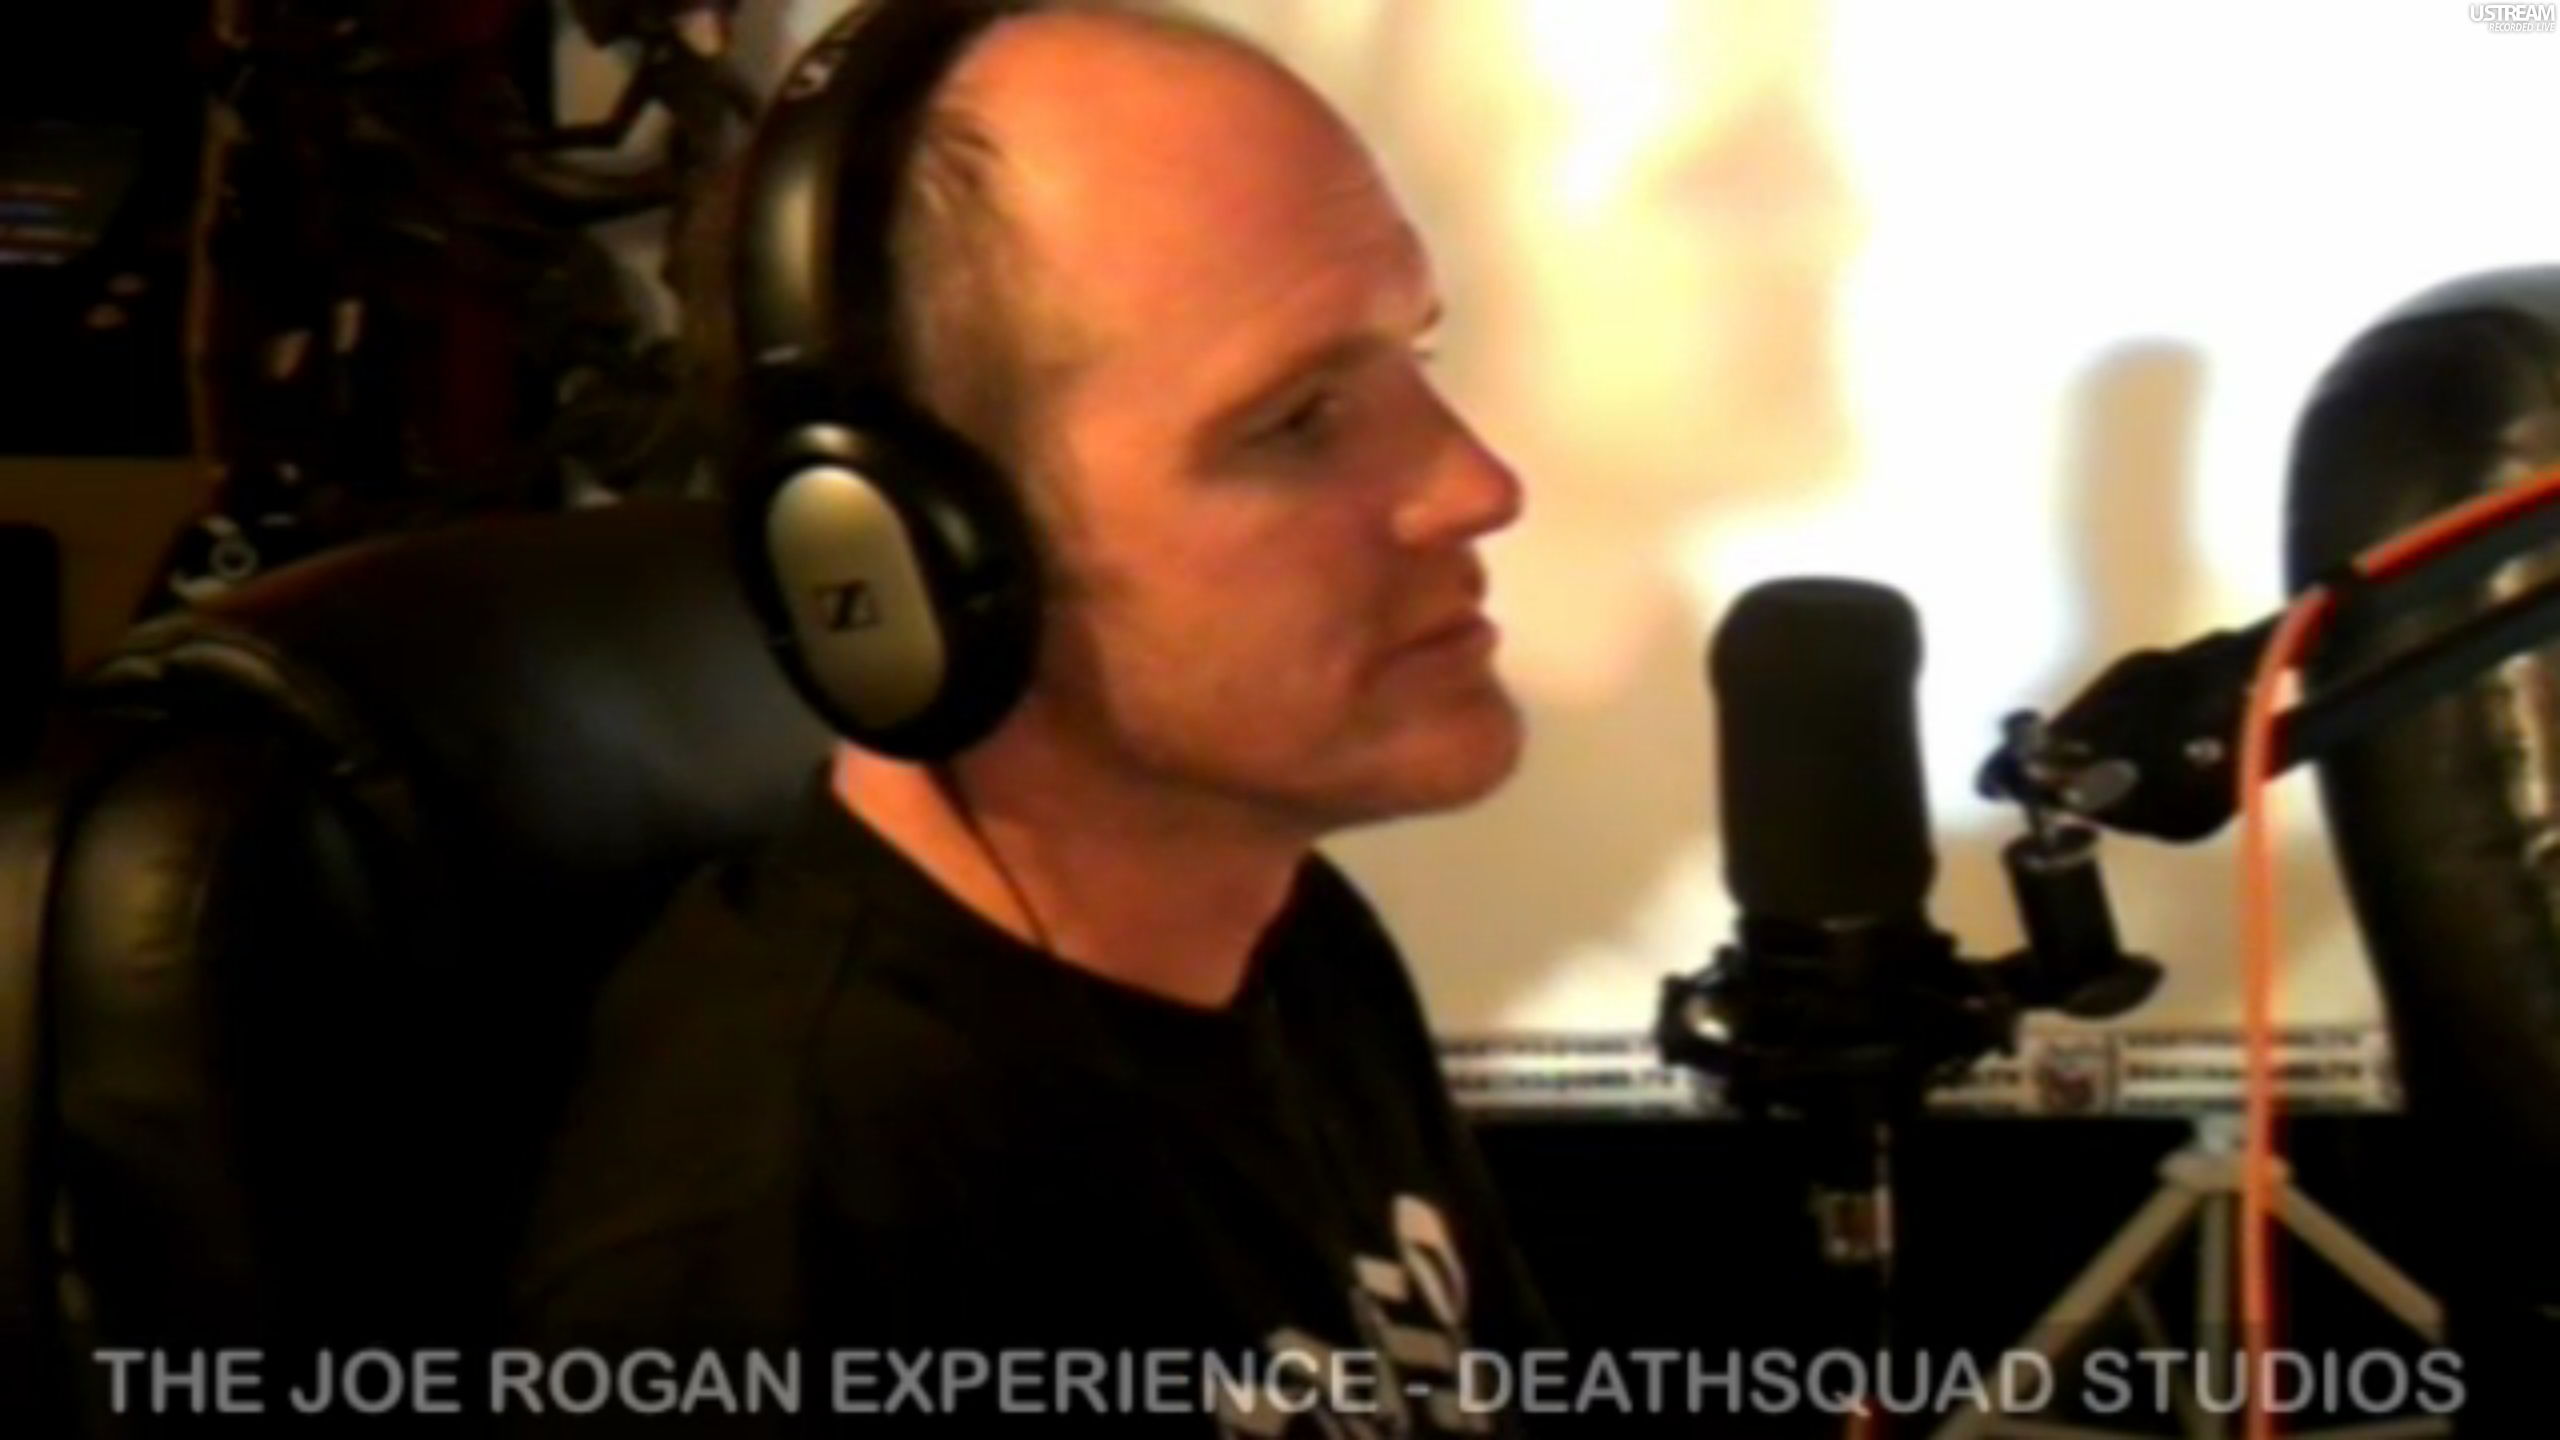 The Joe Rogan Experience #190 – Greg Fitzsimmons, Brian Redban